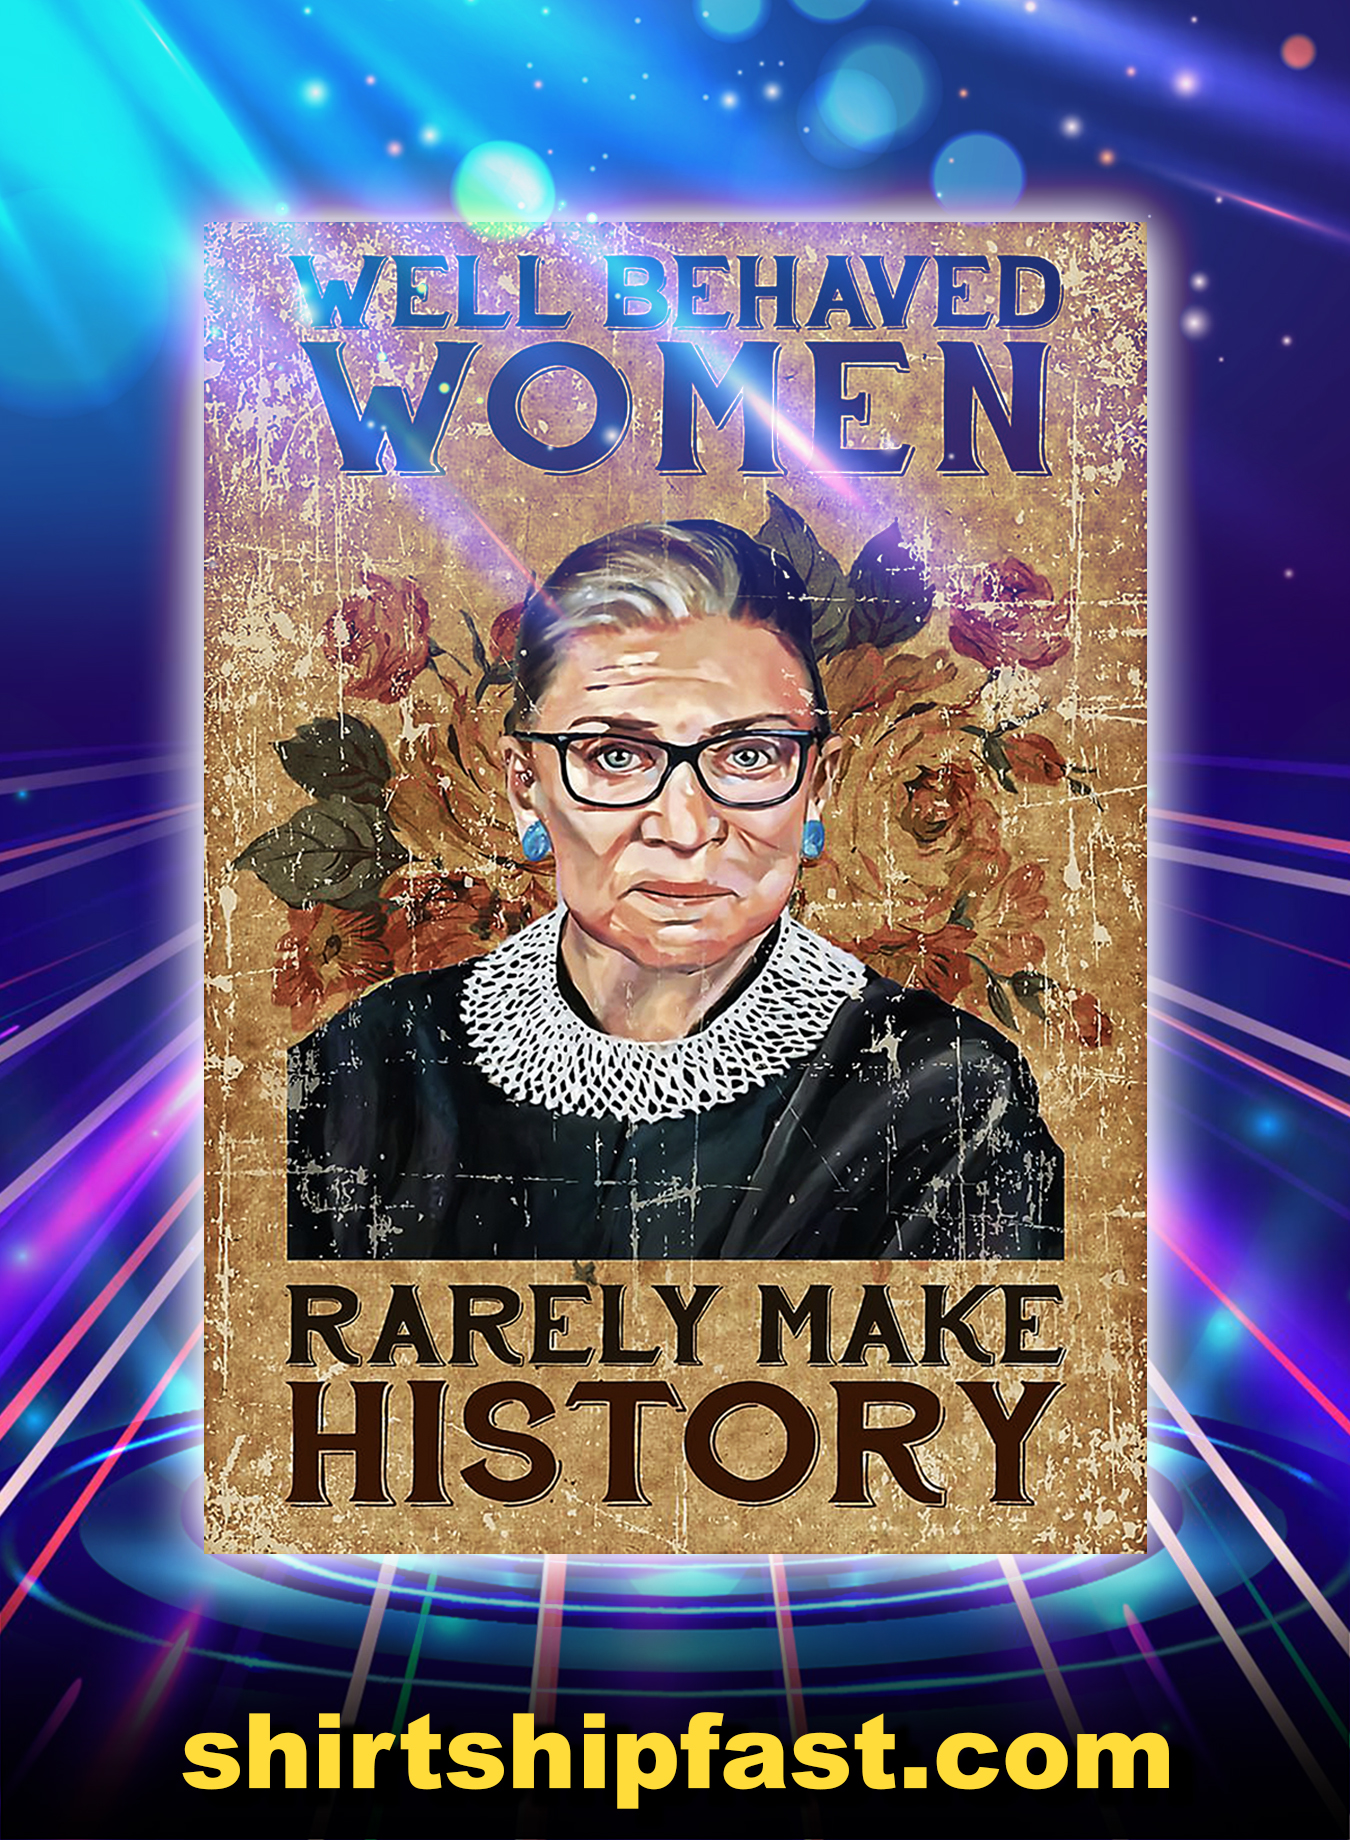 Rbg well behaved woman rearely make history poster - A3